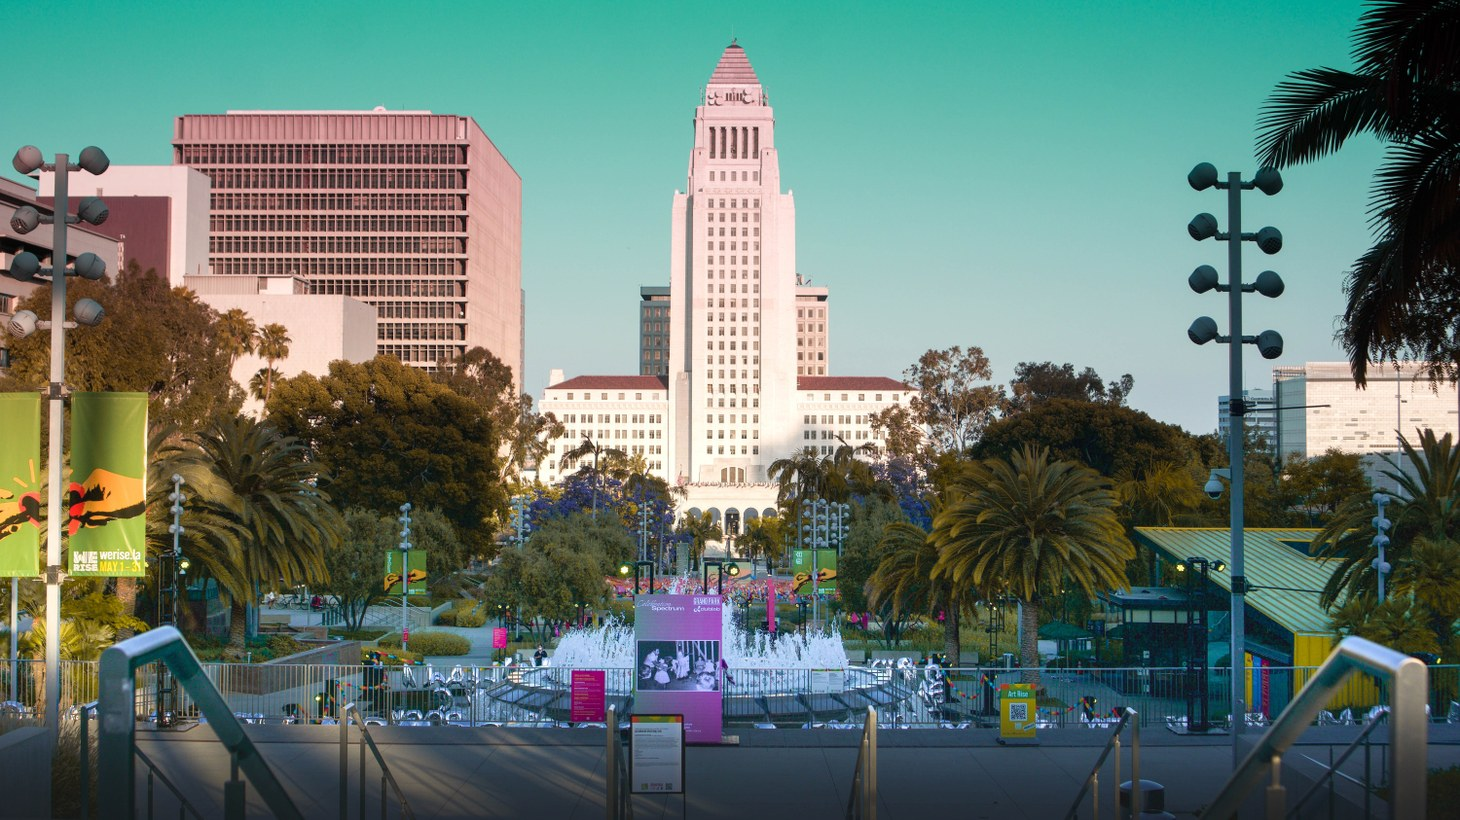 """A view of LA City Hall from Grand Park, as the park hosts the """"Celebration Spectrum"""" art exhibit, May 18, 2021. UCLA professor of architecture and urban design Dana Cuff says, """"Big parks, like Grand Park, show how active our downtown public spaces can be. So I think we have a good future for increasing public activity in our downtown areas."""""""